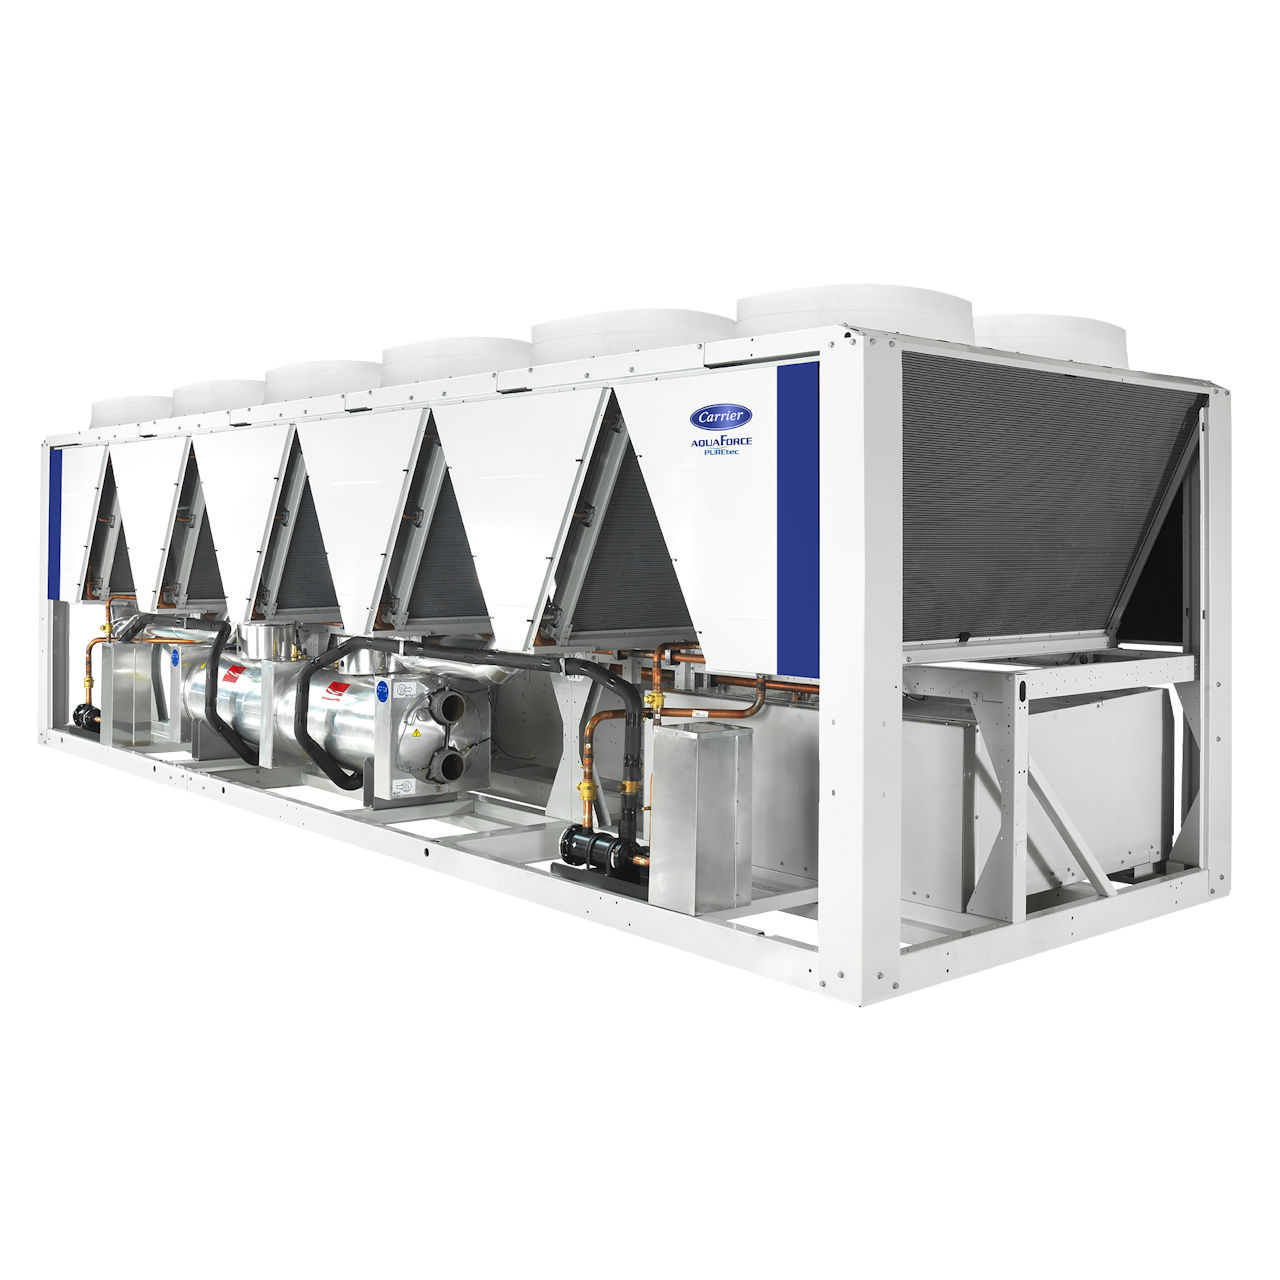 carrier-30XBZE-air-cooled-fixed-speed-screw-chiller-left